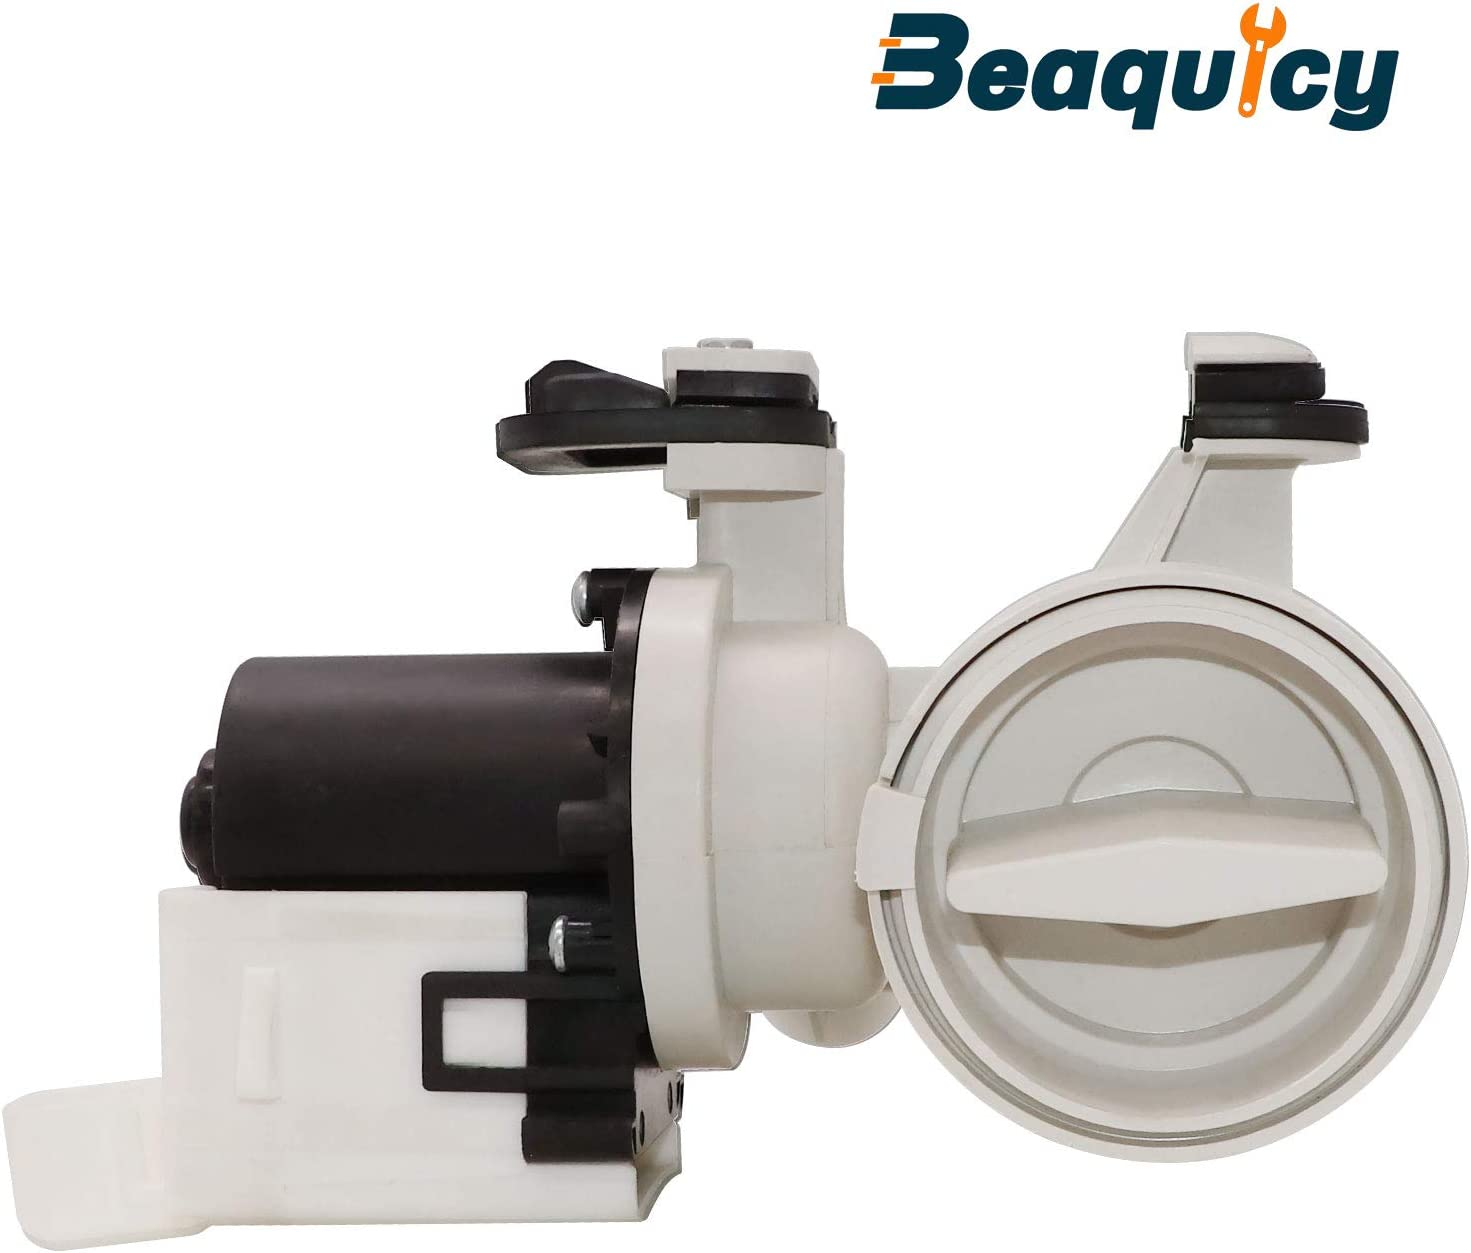 Beaquicy W10130913 Washer Drain Pump (ORIGINAL VERSION) - Replacement part for Whirlpool and Kenmore Washers - Replaces WPW10730972 8540024 8540025 W10117829